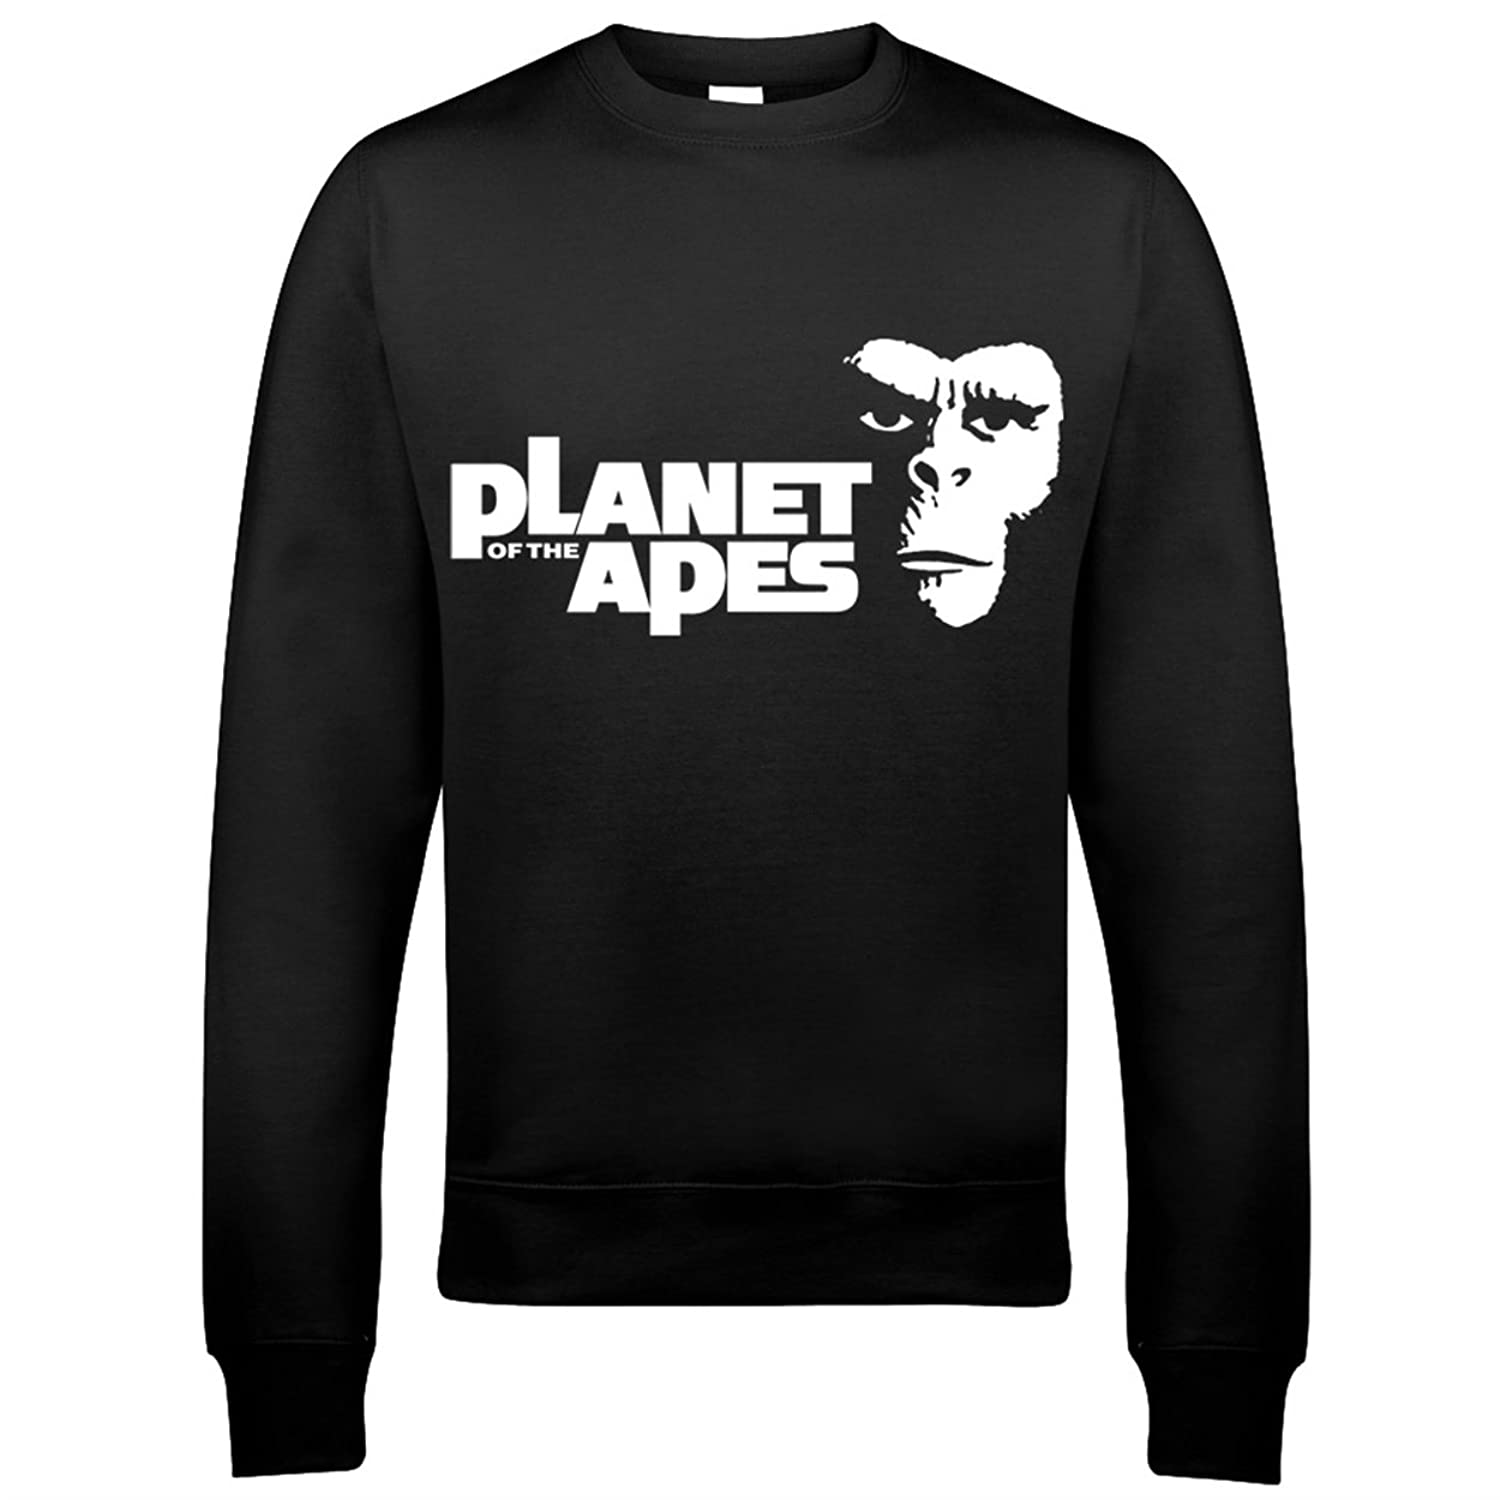 9102 Planet Of The Apes Mens Sweatshirt ANSA Gen-Sys Escape From Rise Battle For Beneath Retro